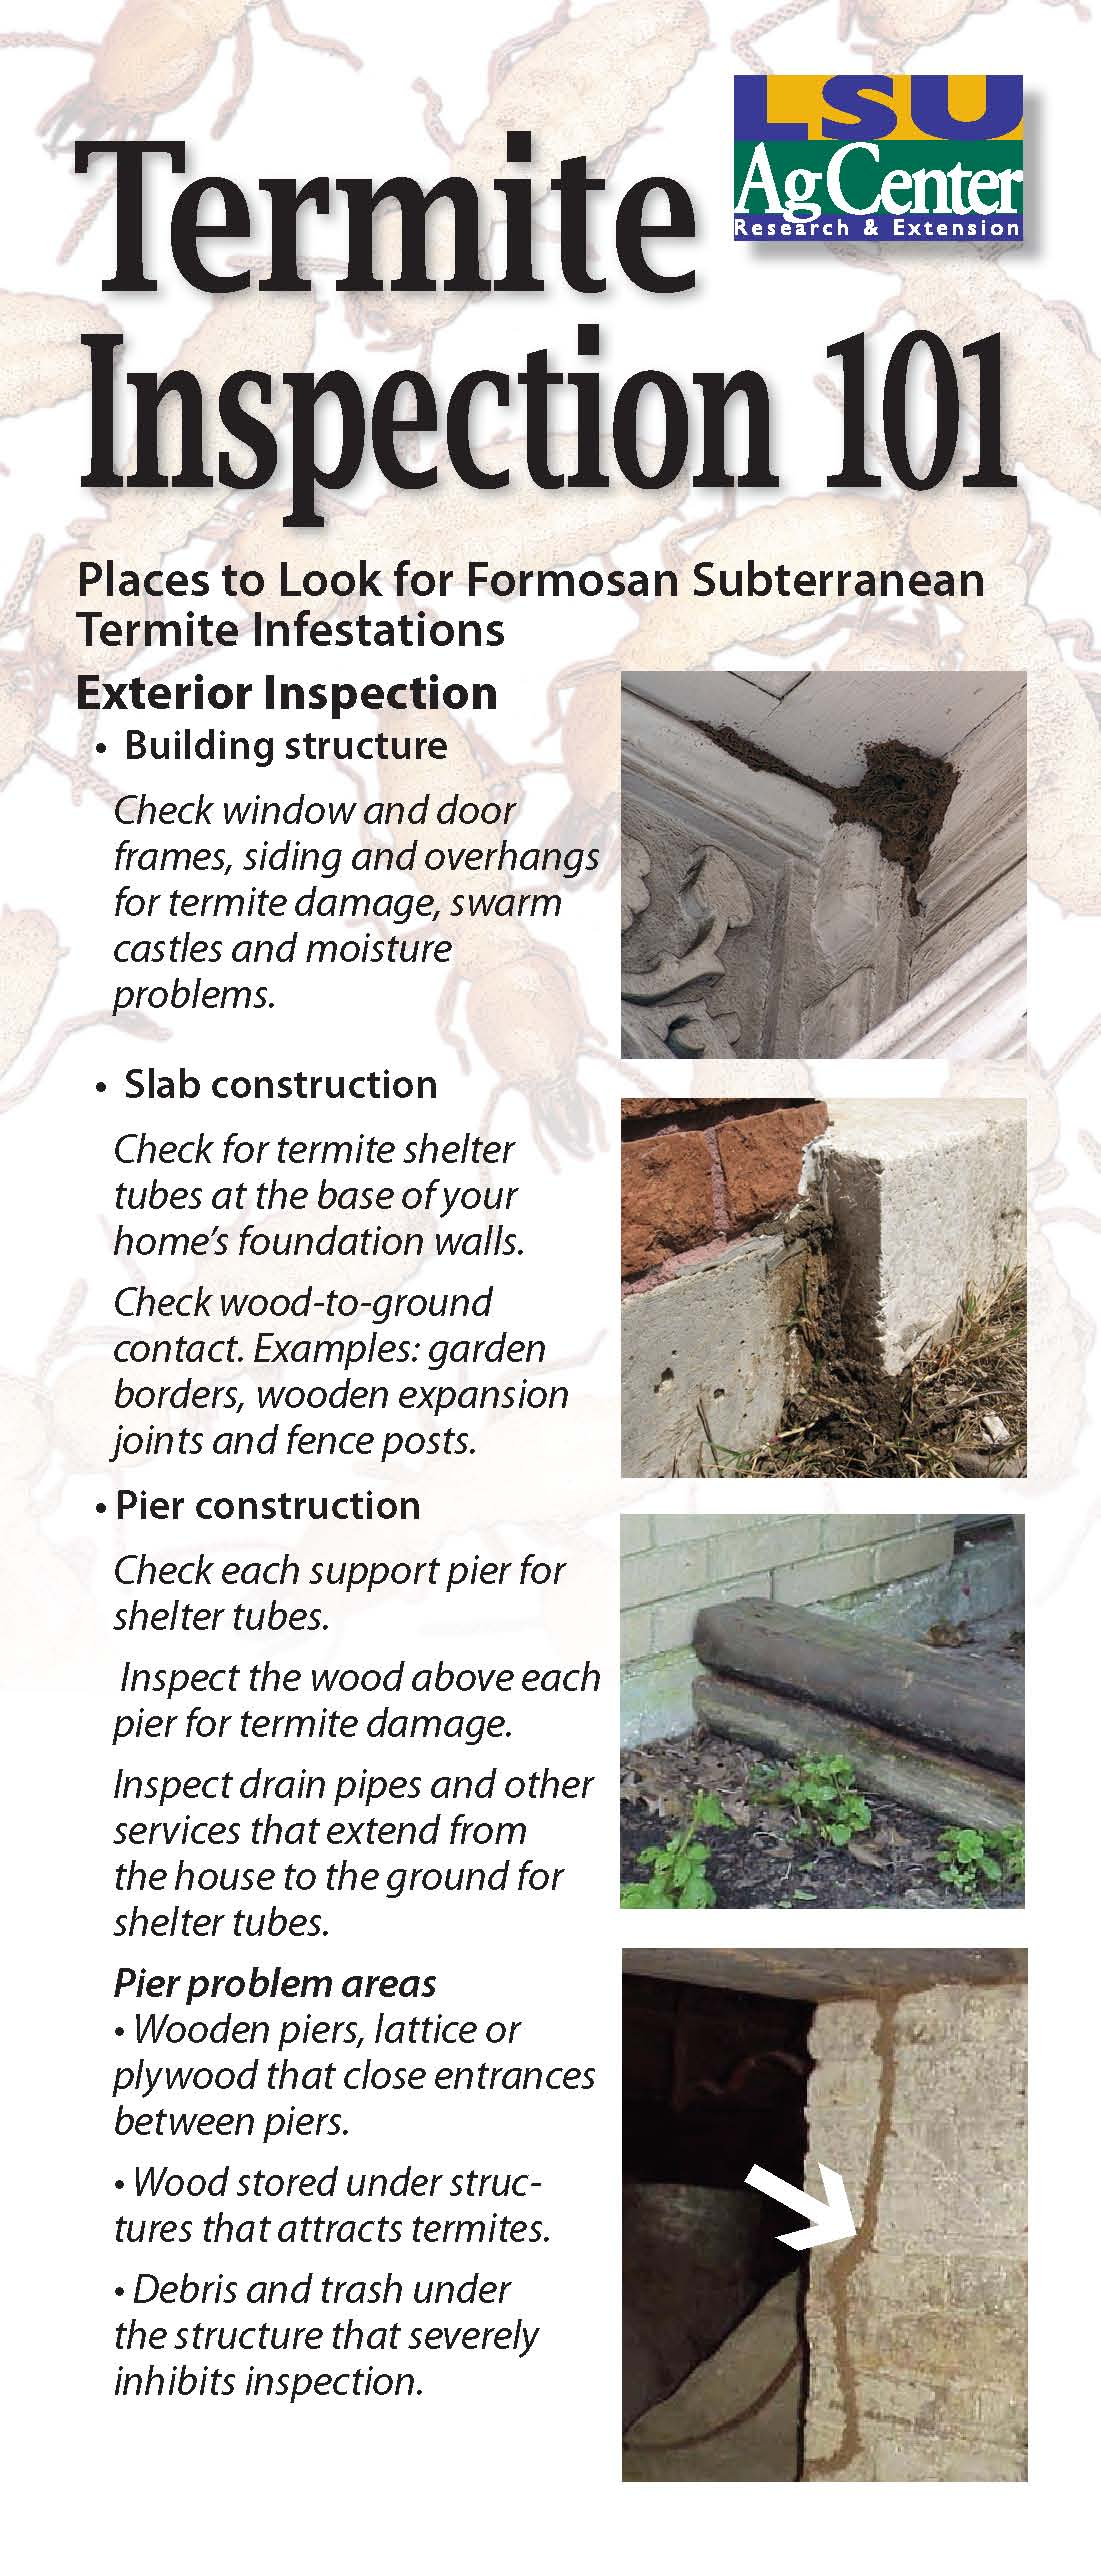 Termite Inspection 101